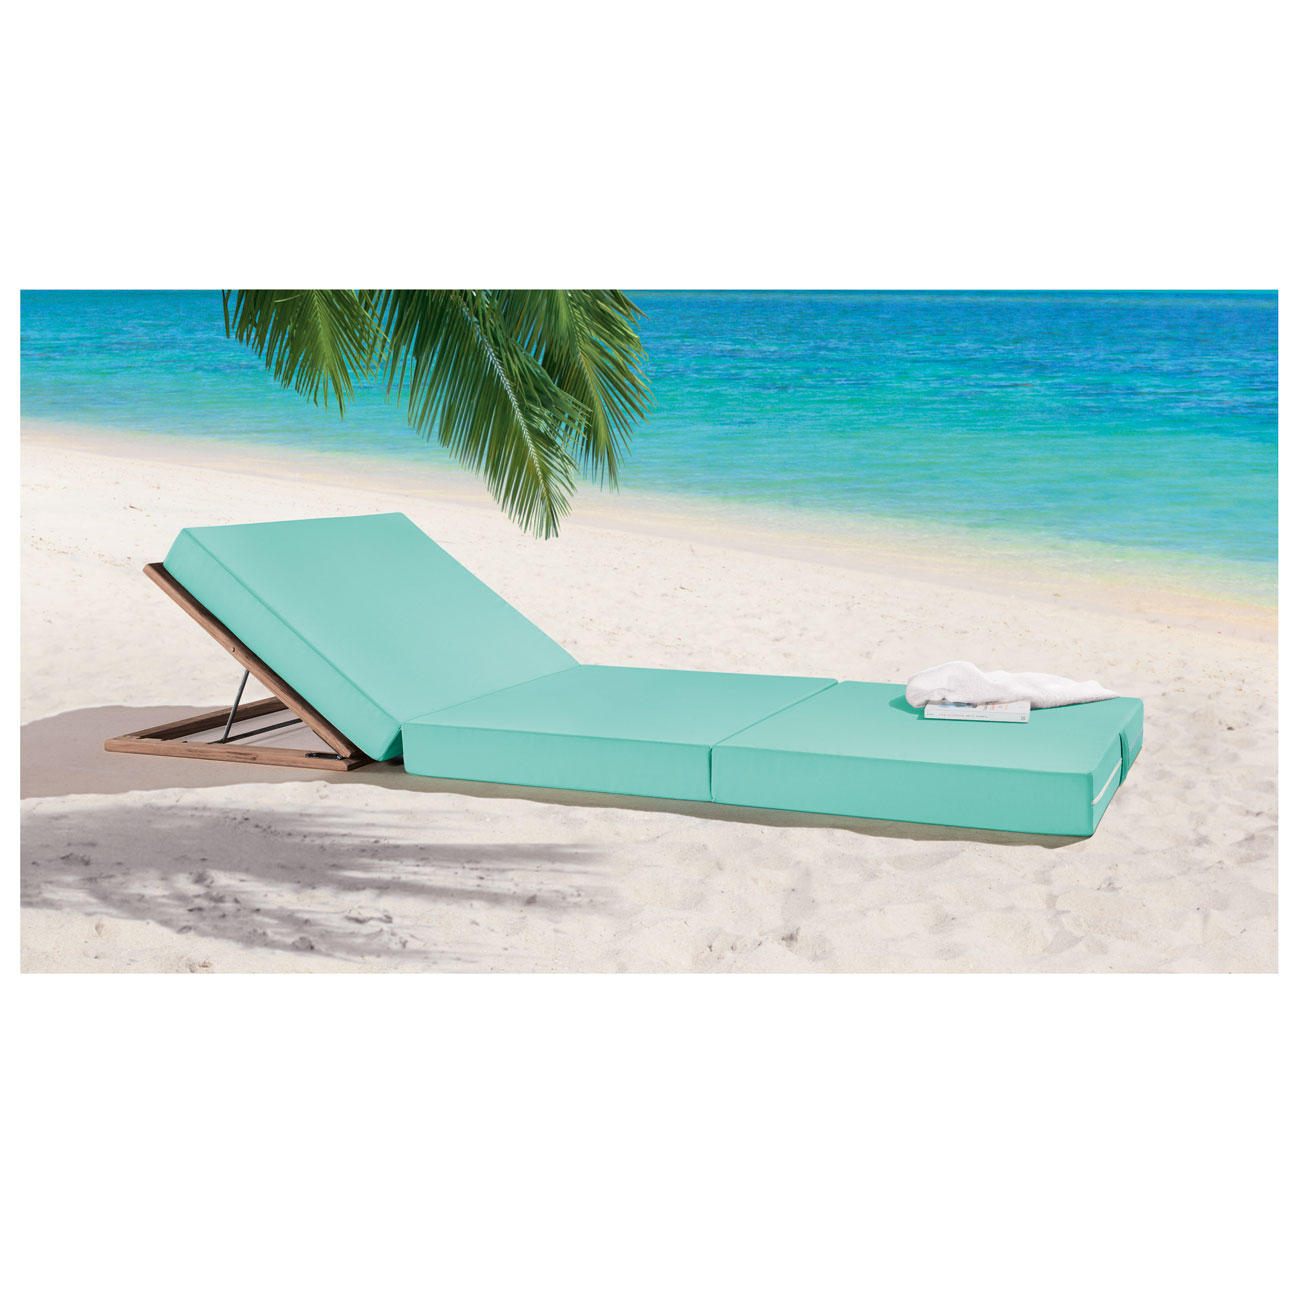 matelas de plage jan kurtz m80 ou dossier en bois robinier. Black Bedroom Furniture Sets. Home Design Ideas